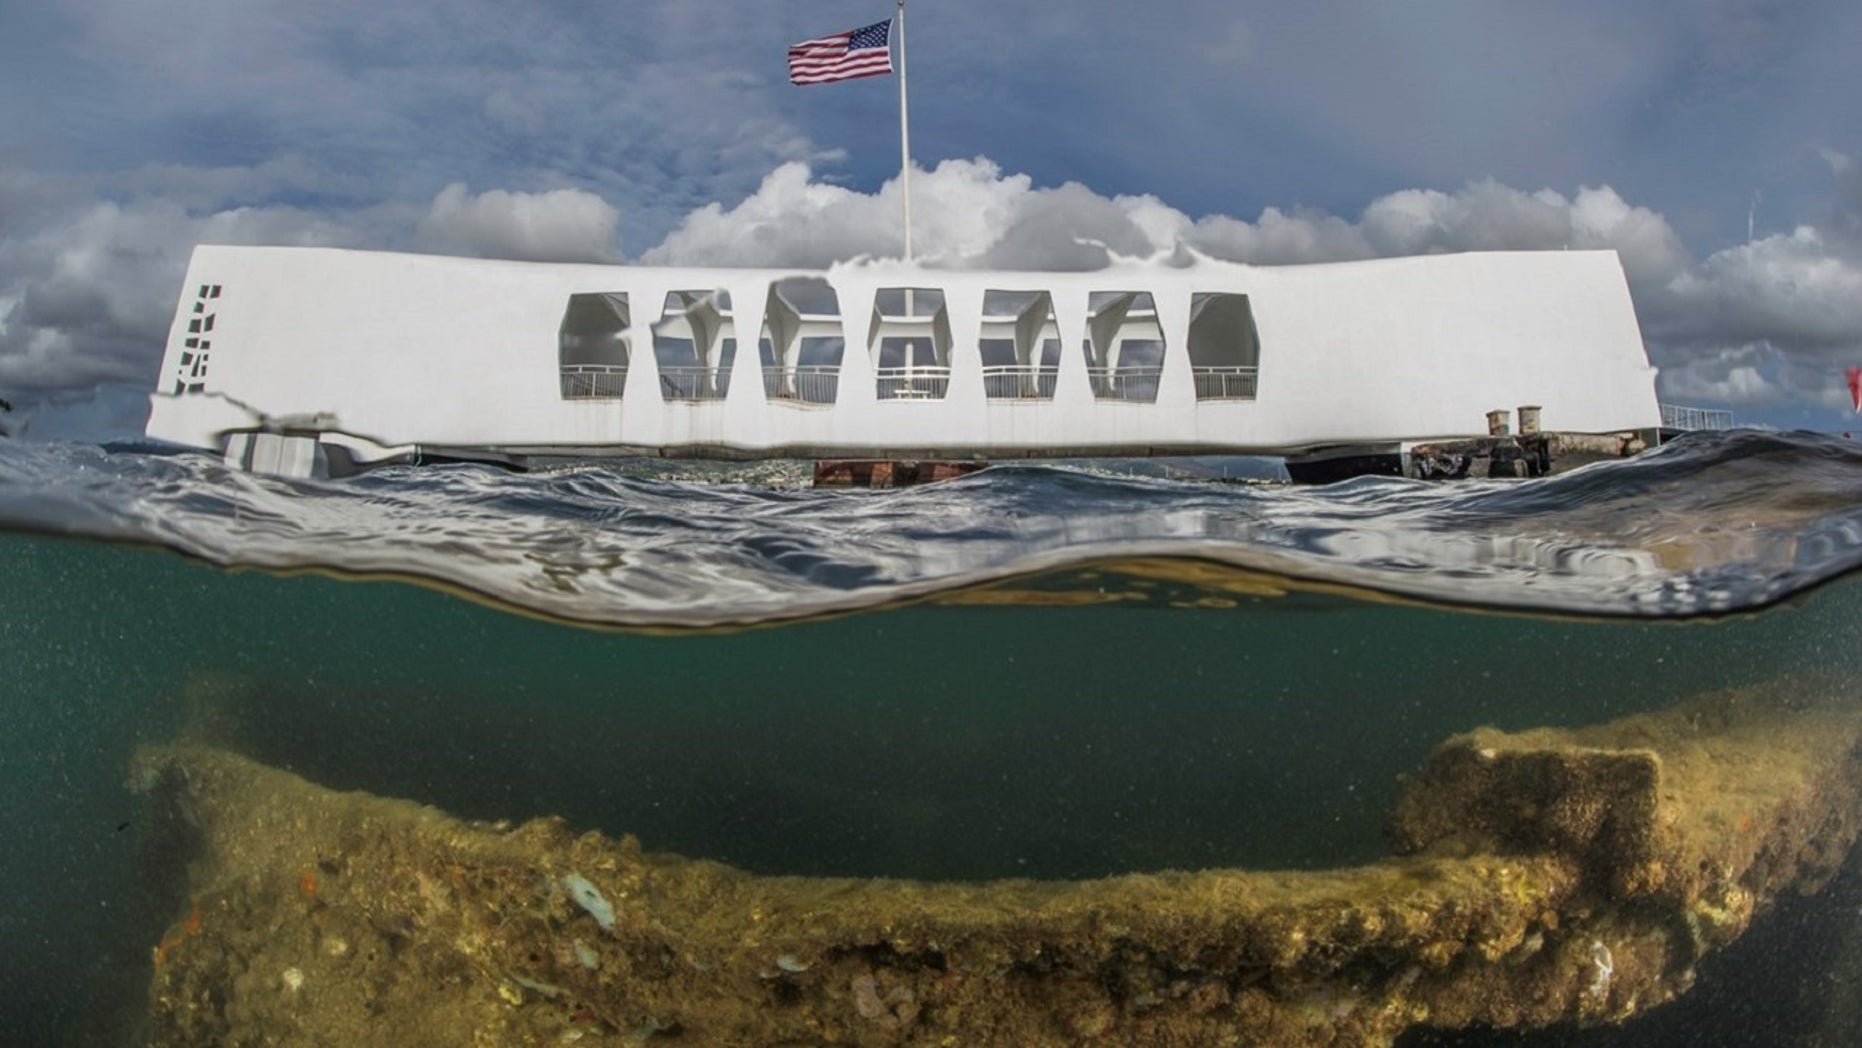 FILE: A view of the USS Arizona Memorial that shows theship's wreckage.